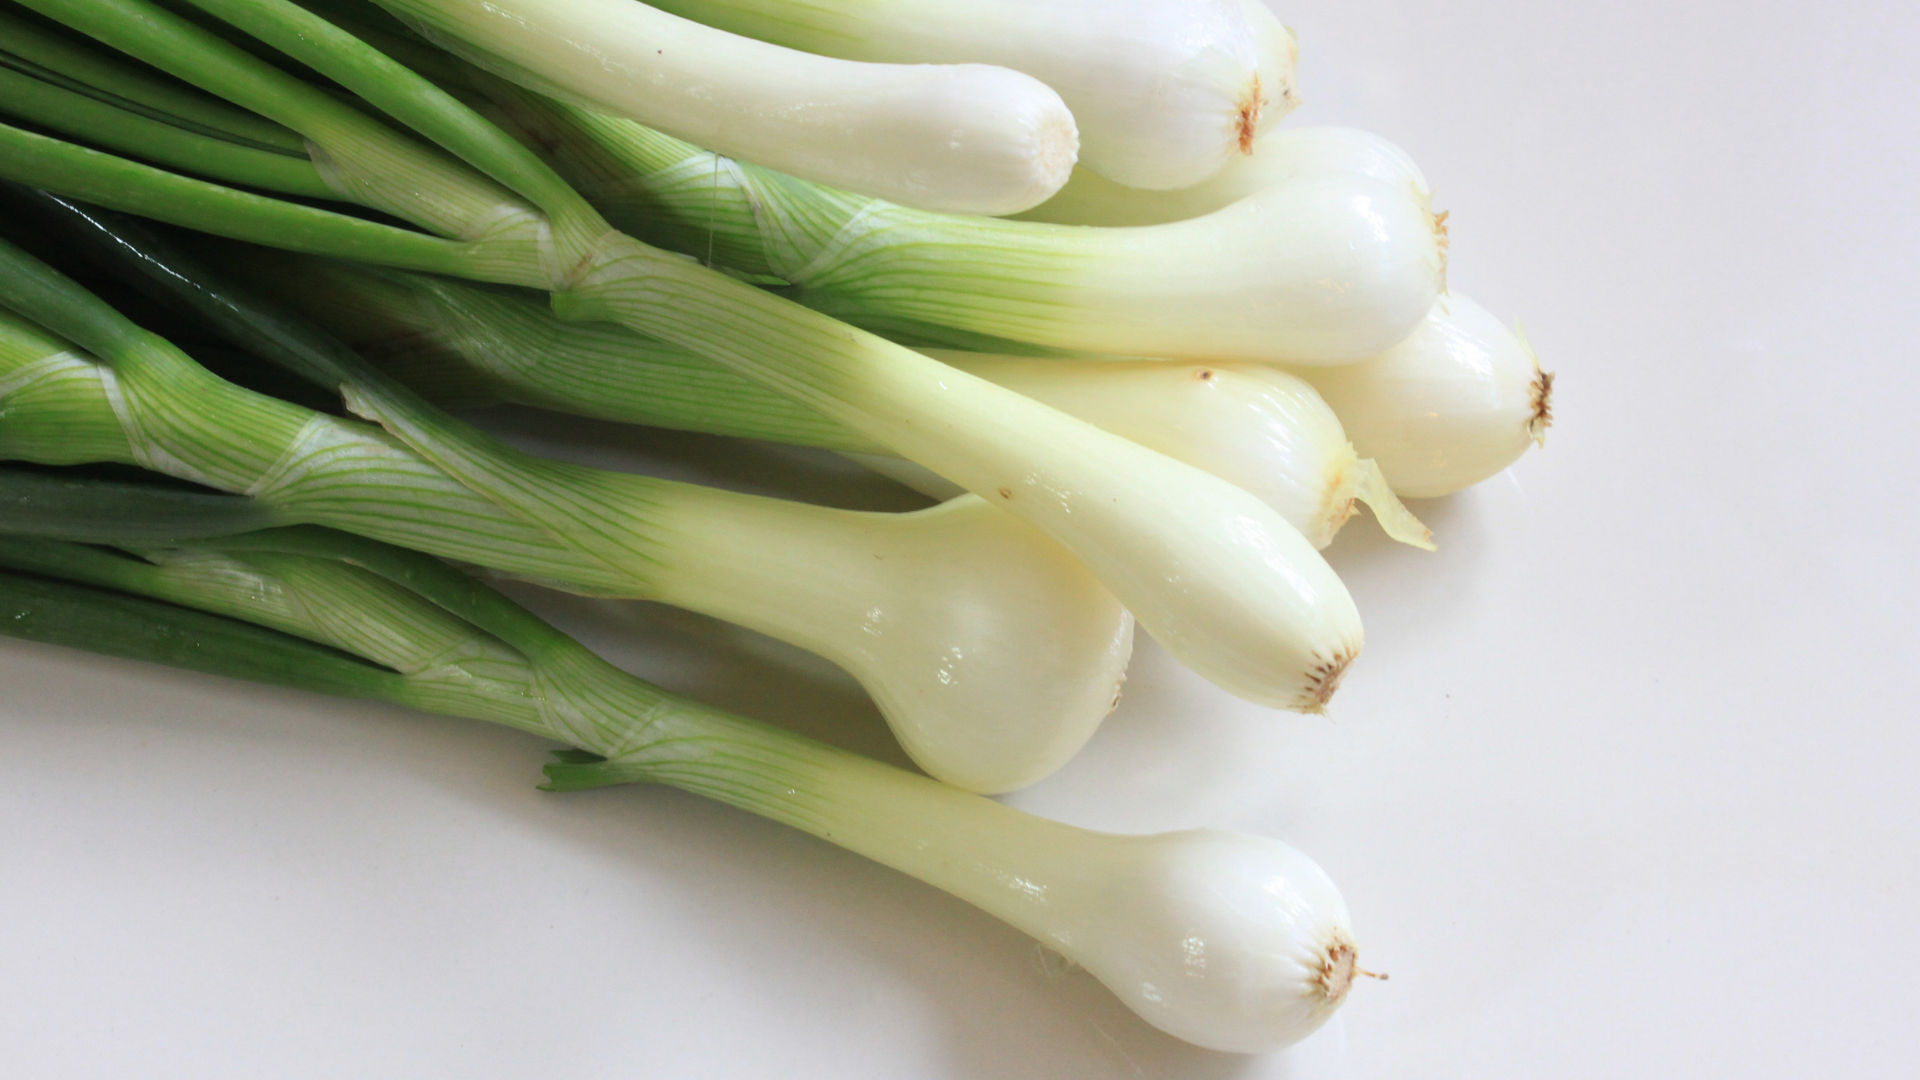 Spring Onion for chewing when teething